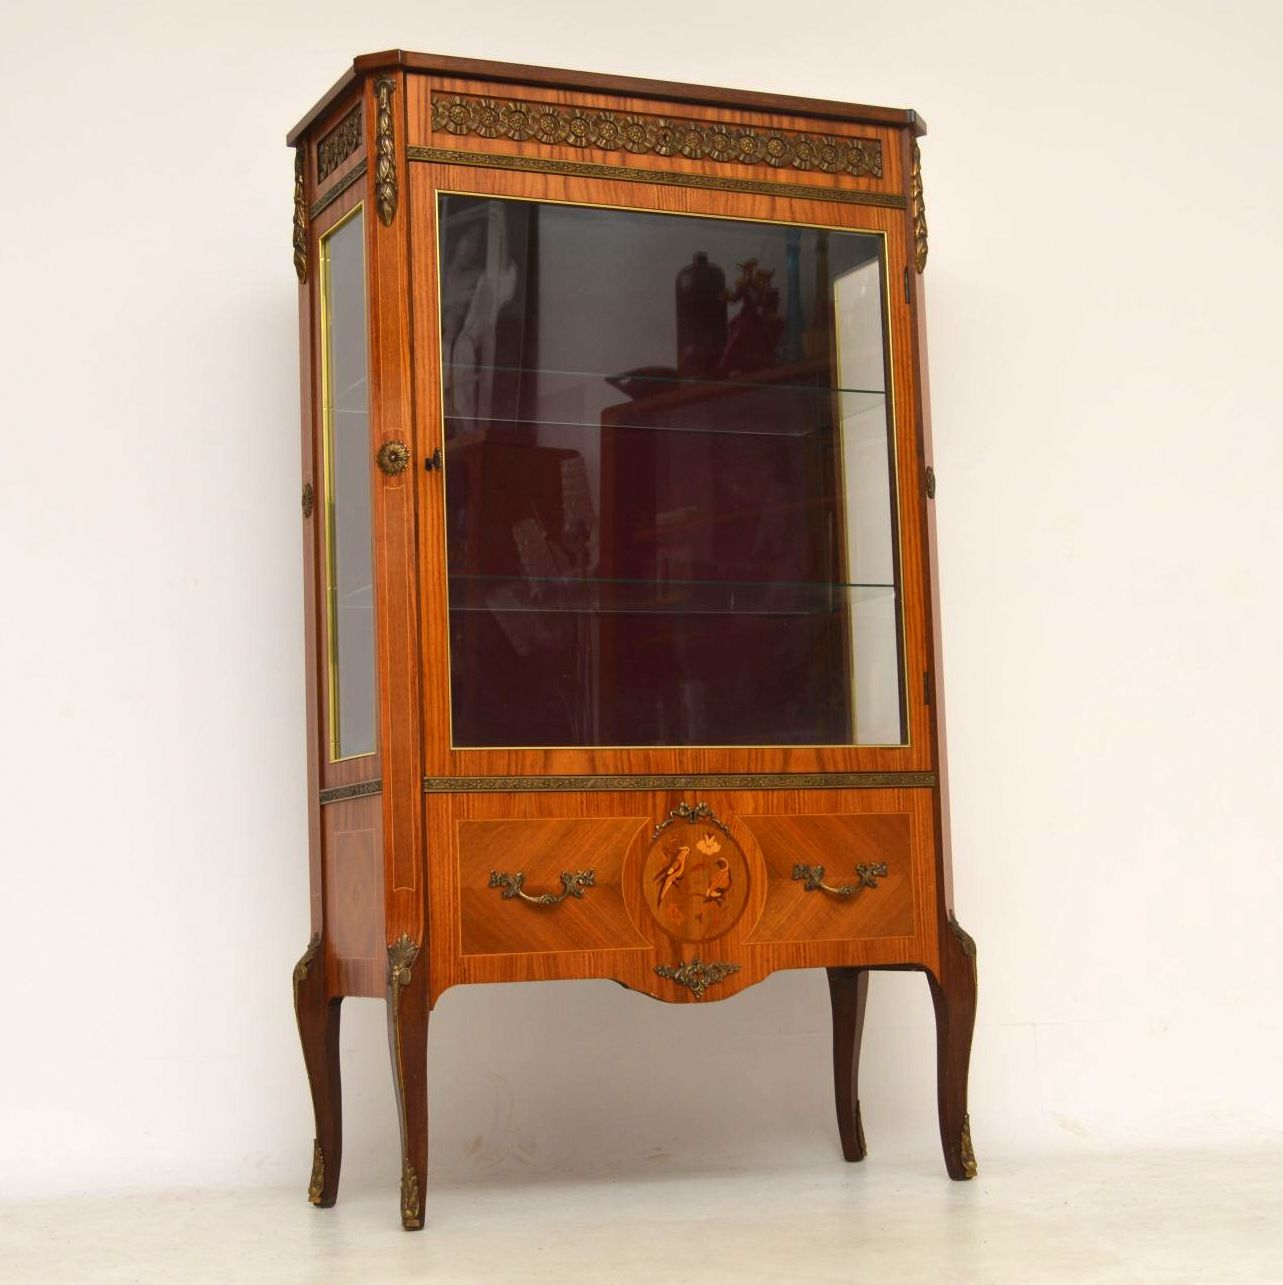 Antique Swedish Kingwood Display Cabinet - Antique Swedish Kingwood Display Cabinet Interior Boutiques